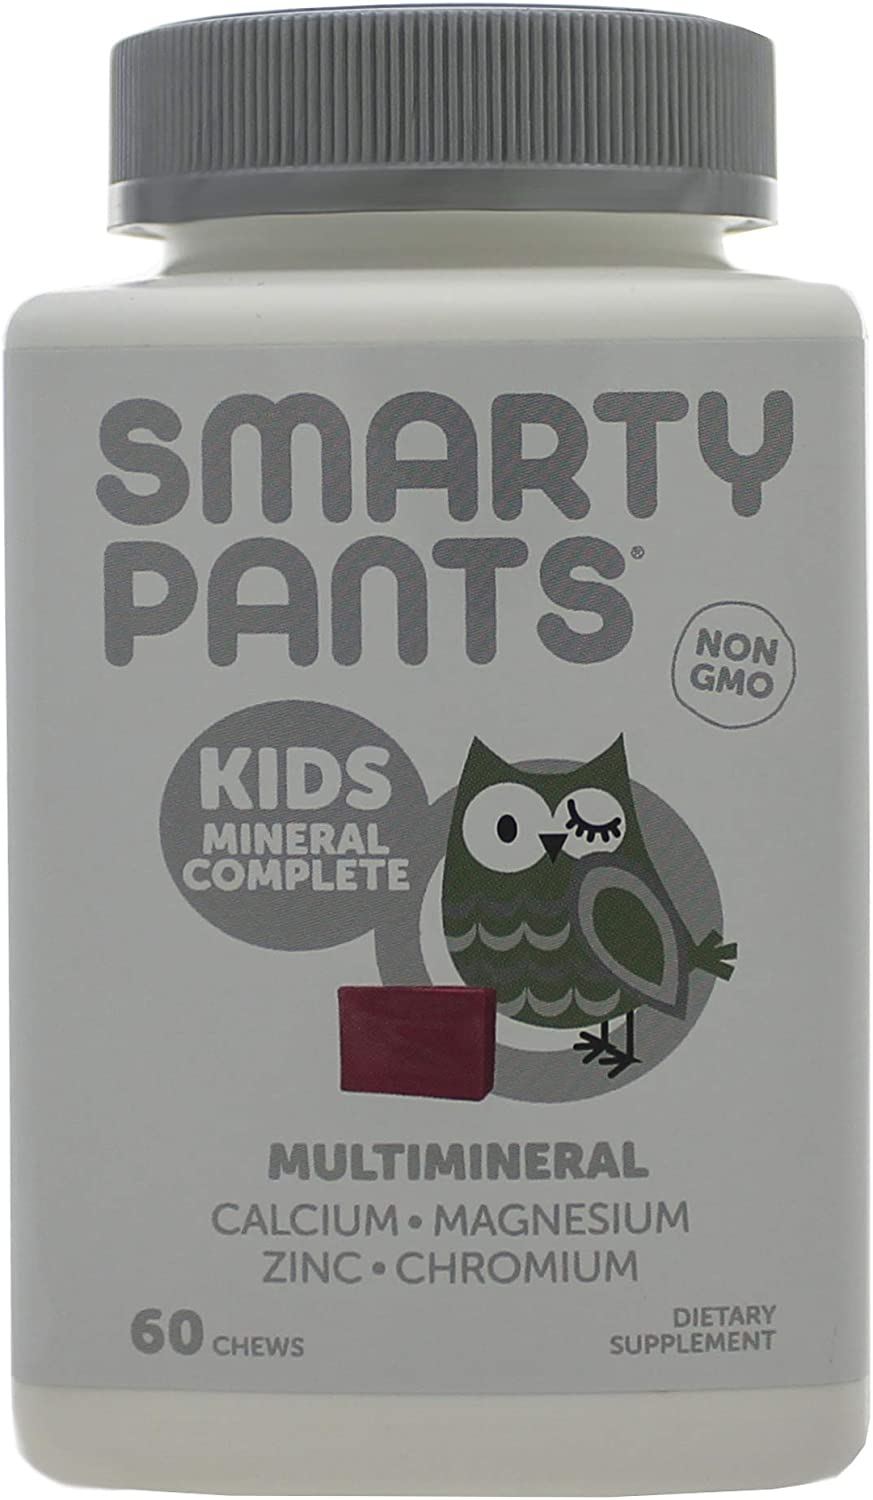 Kids Mineral Complete 60 Chewables - 2 Packs